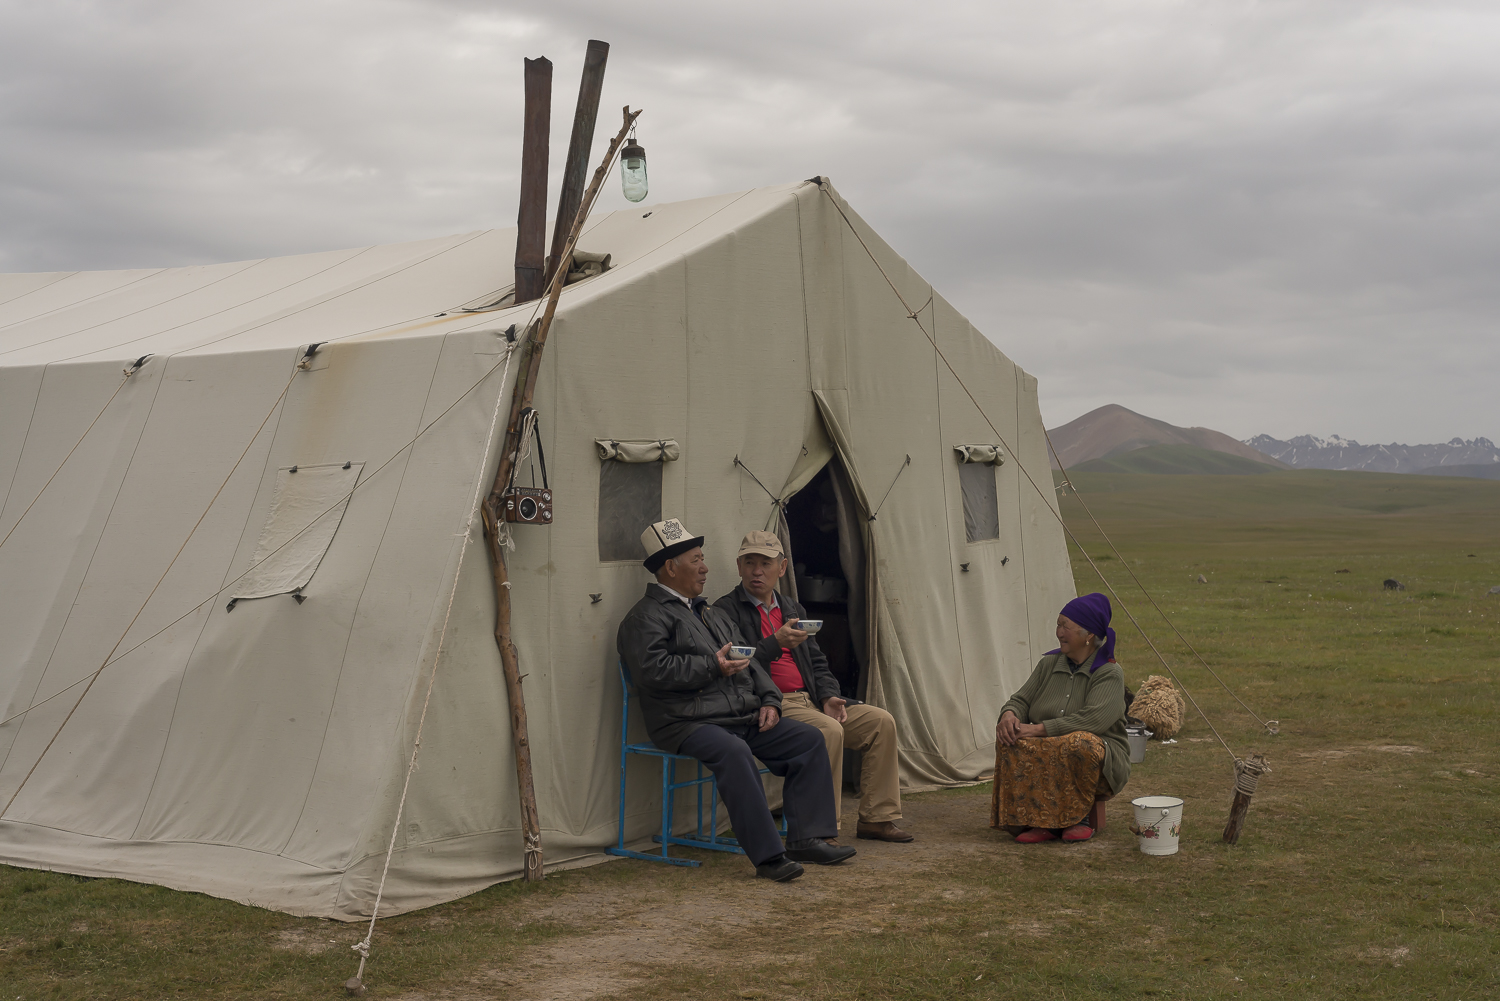 jo-kearney-photography-video-kyrgyzstan-nomads-song-kul-lake.jpg